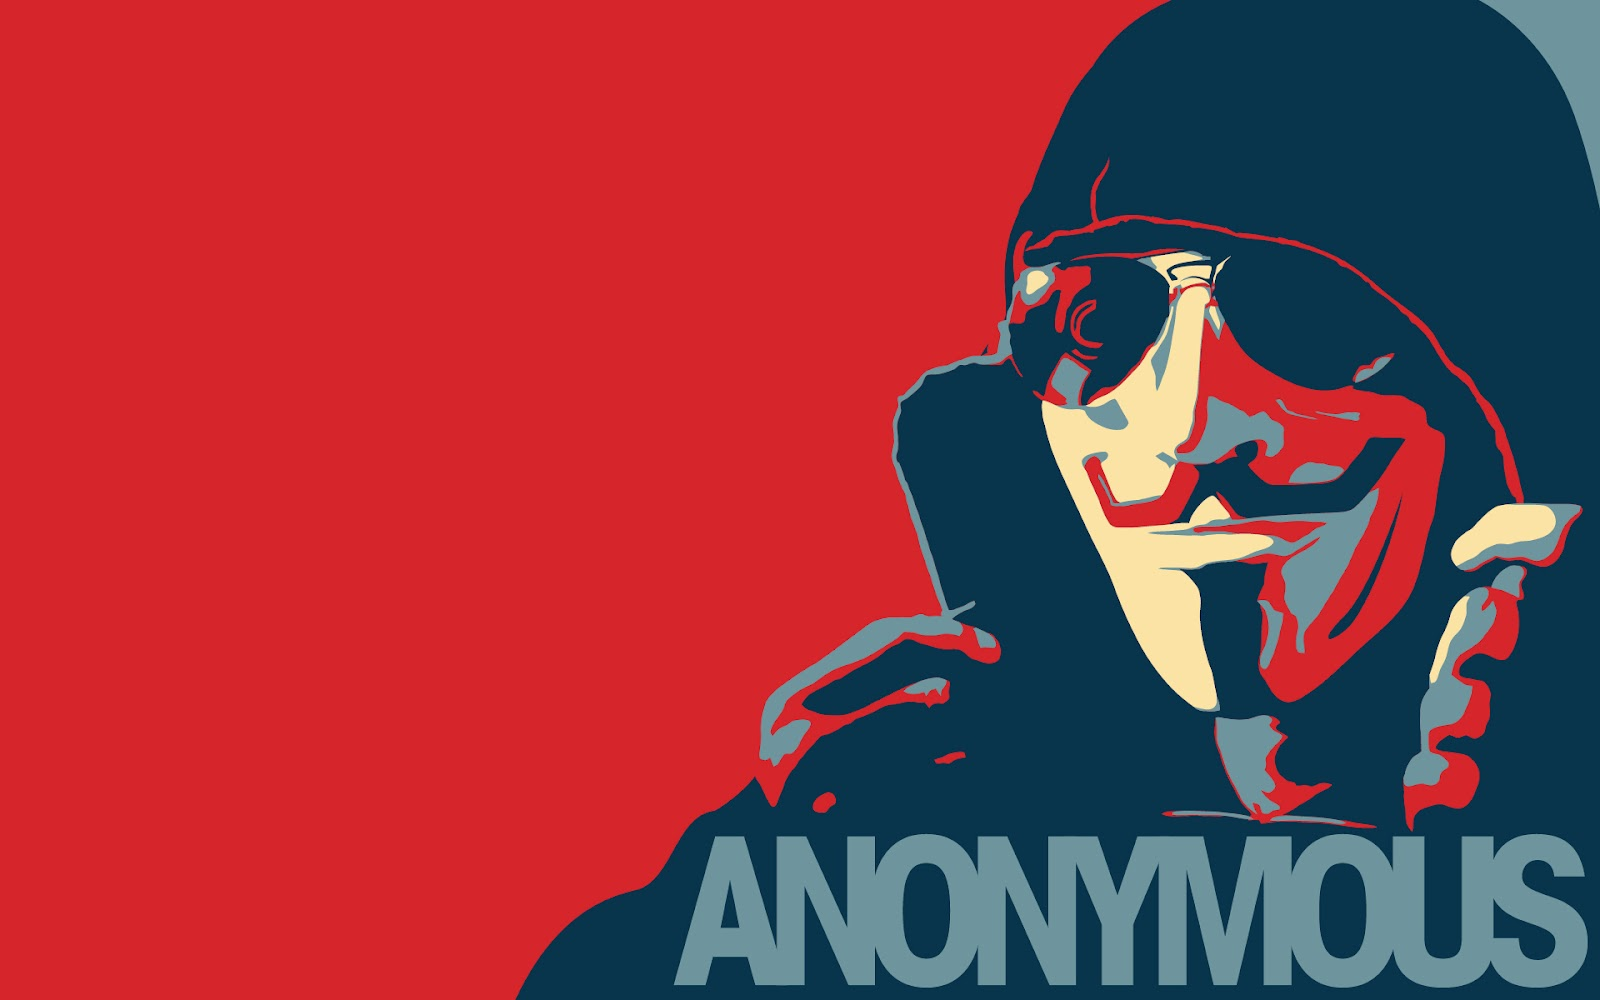 30 WALLPAPER HD ANONYMOUS Fordigo 30 WALLPAPER HD ANONYMOUS